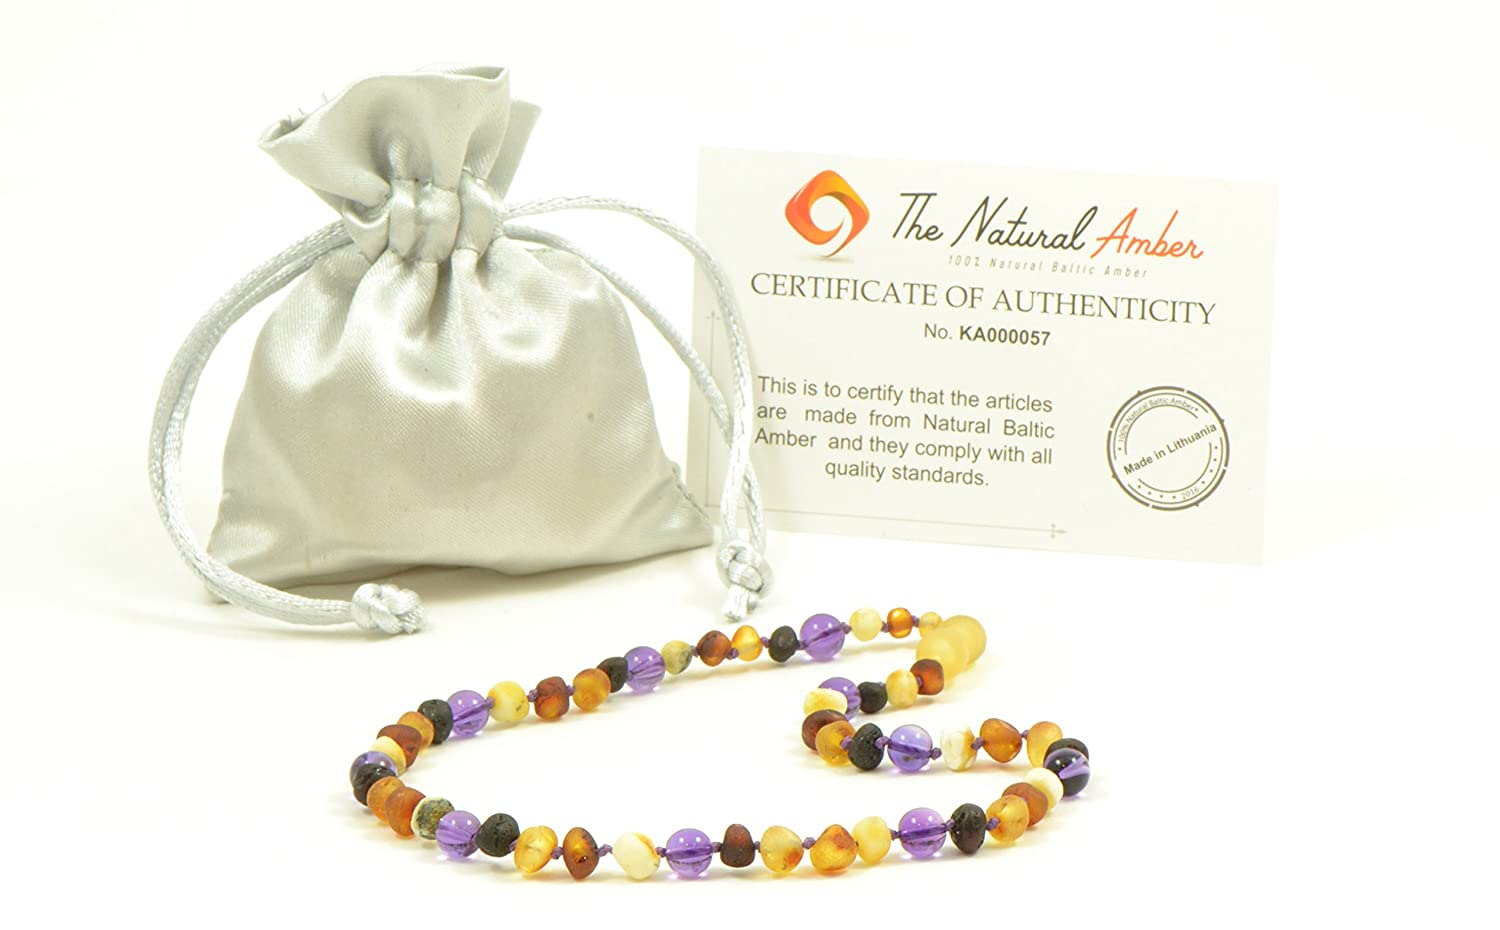 Unisex Hand-Made from Certified Baltic Amber Beads Amber Teething Necklace for Baby Amber Jewelry 12.6-14.1 inches TheNaturalAmber B41-M1 12,6 inch Raw Baltic Amber and Amethyst Beads